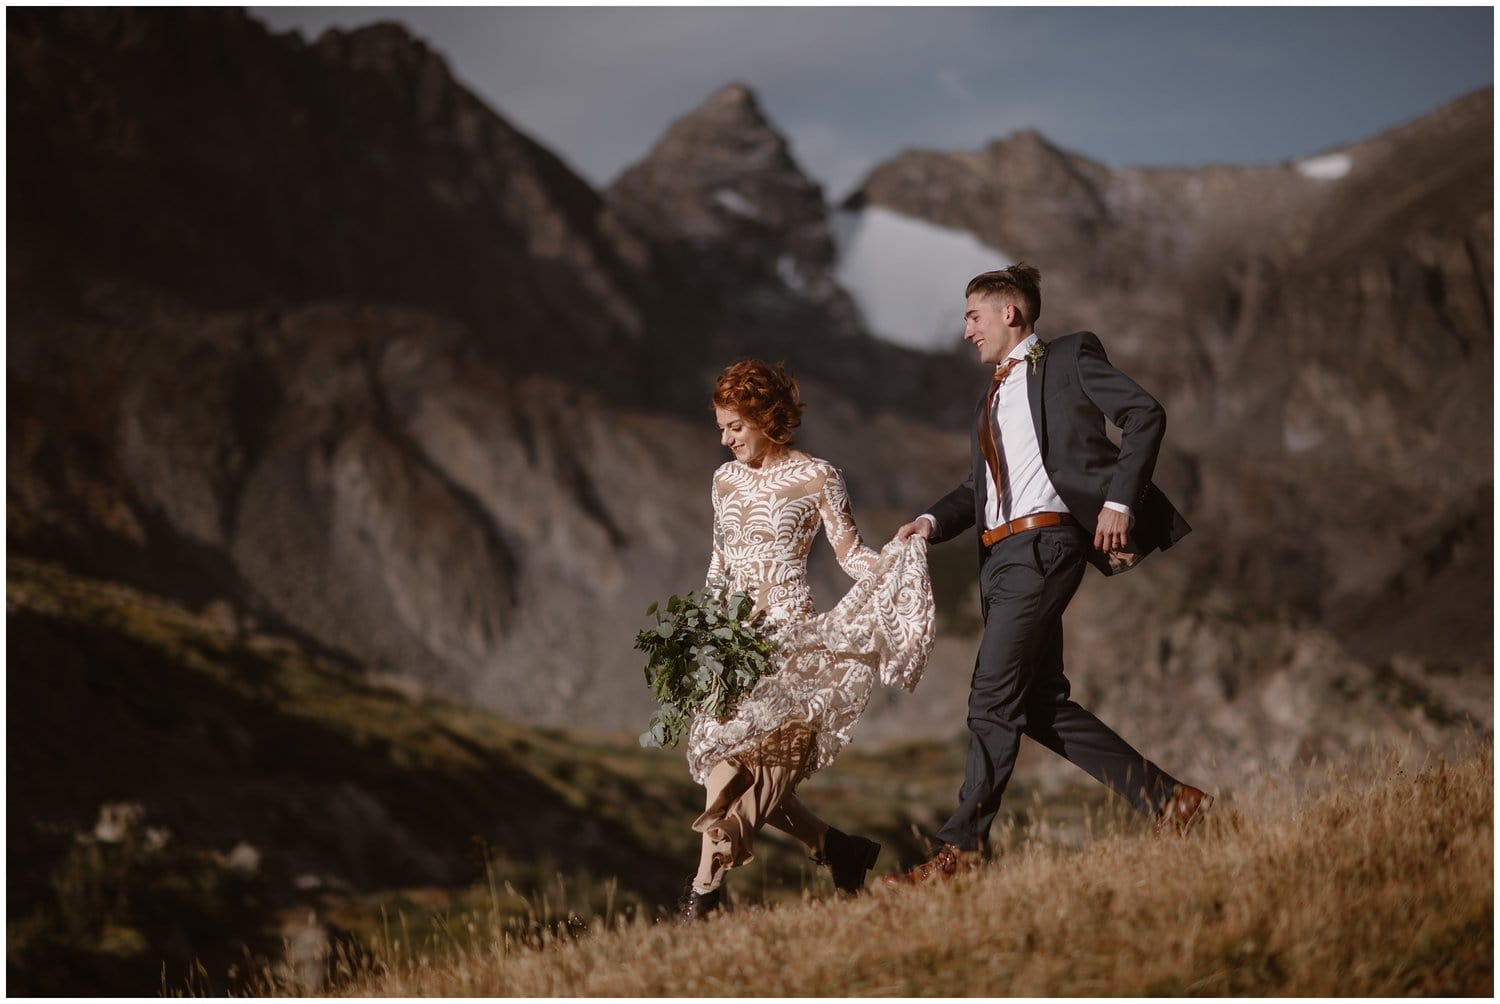 Groom helps bride hold her dress while walking down the mountain on their wedding day.